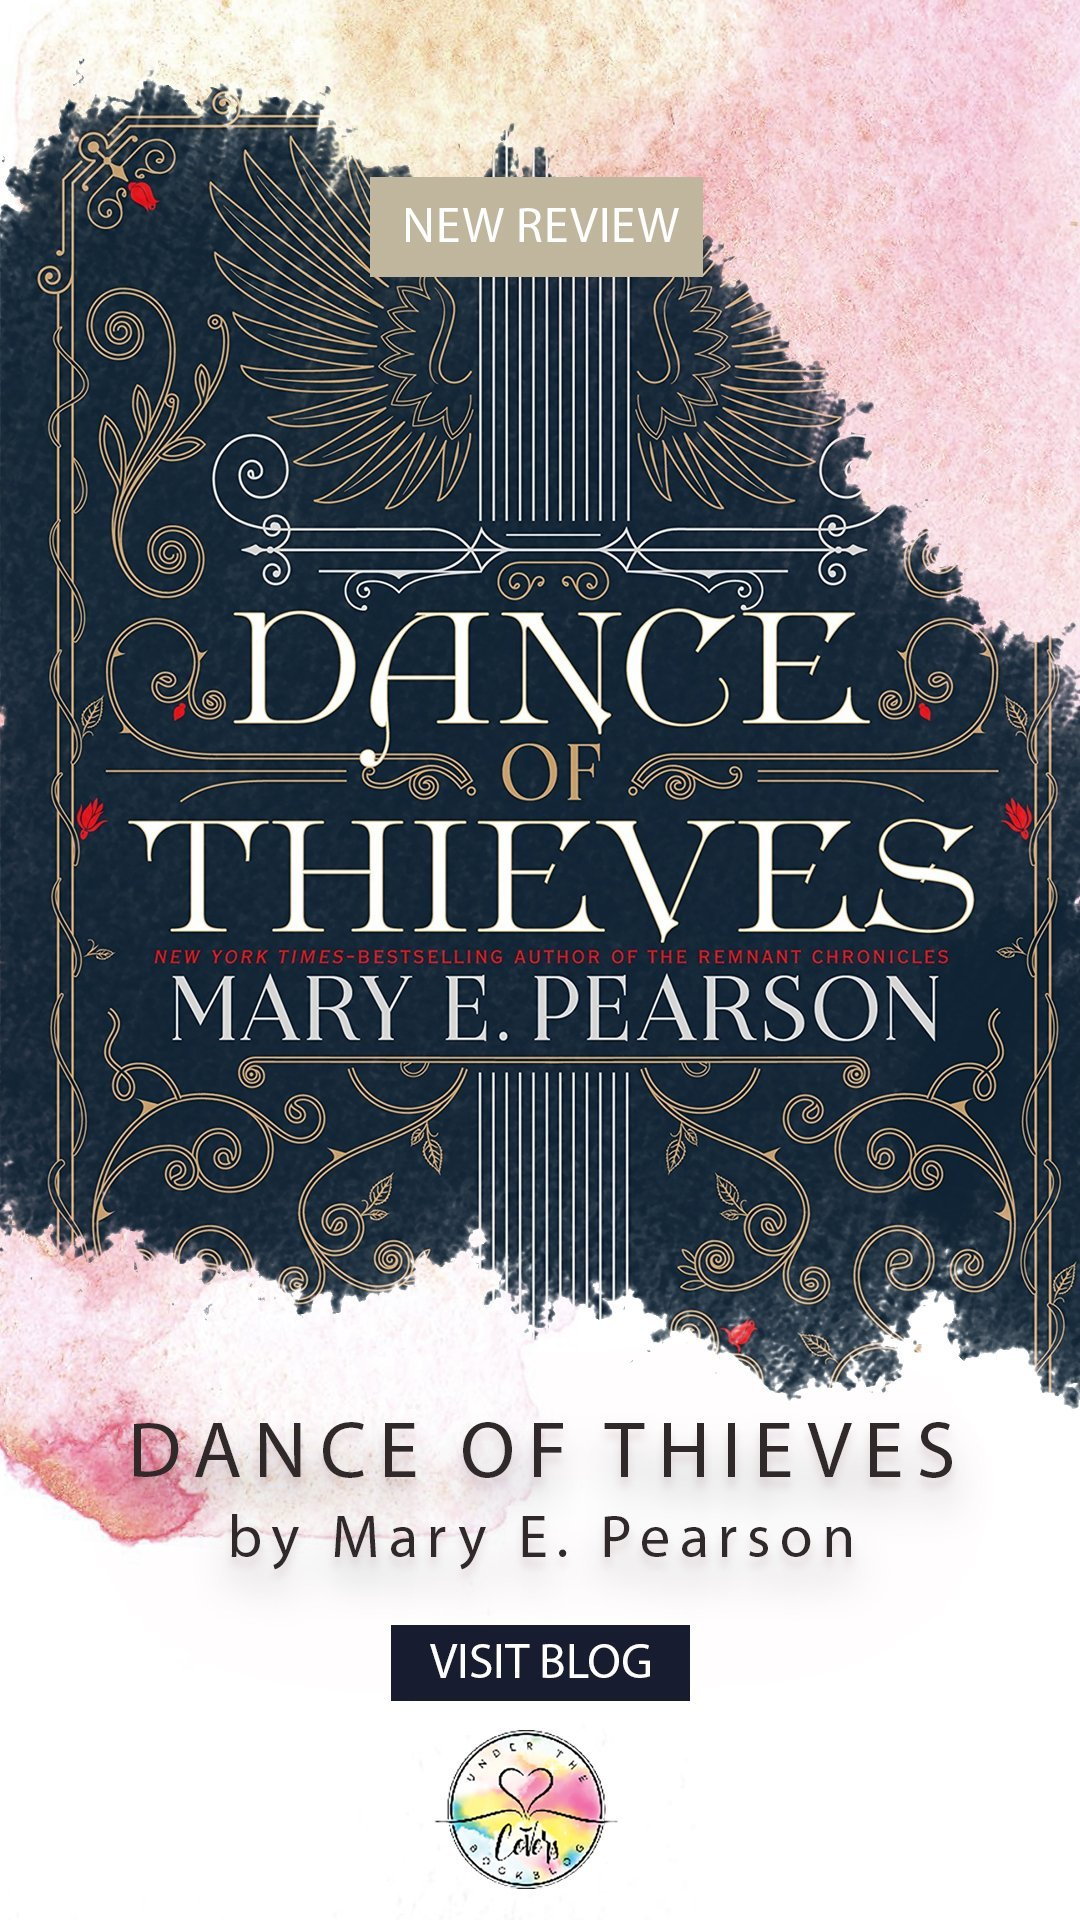 Review: Dance of Thieves by Mary E. Pearson